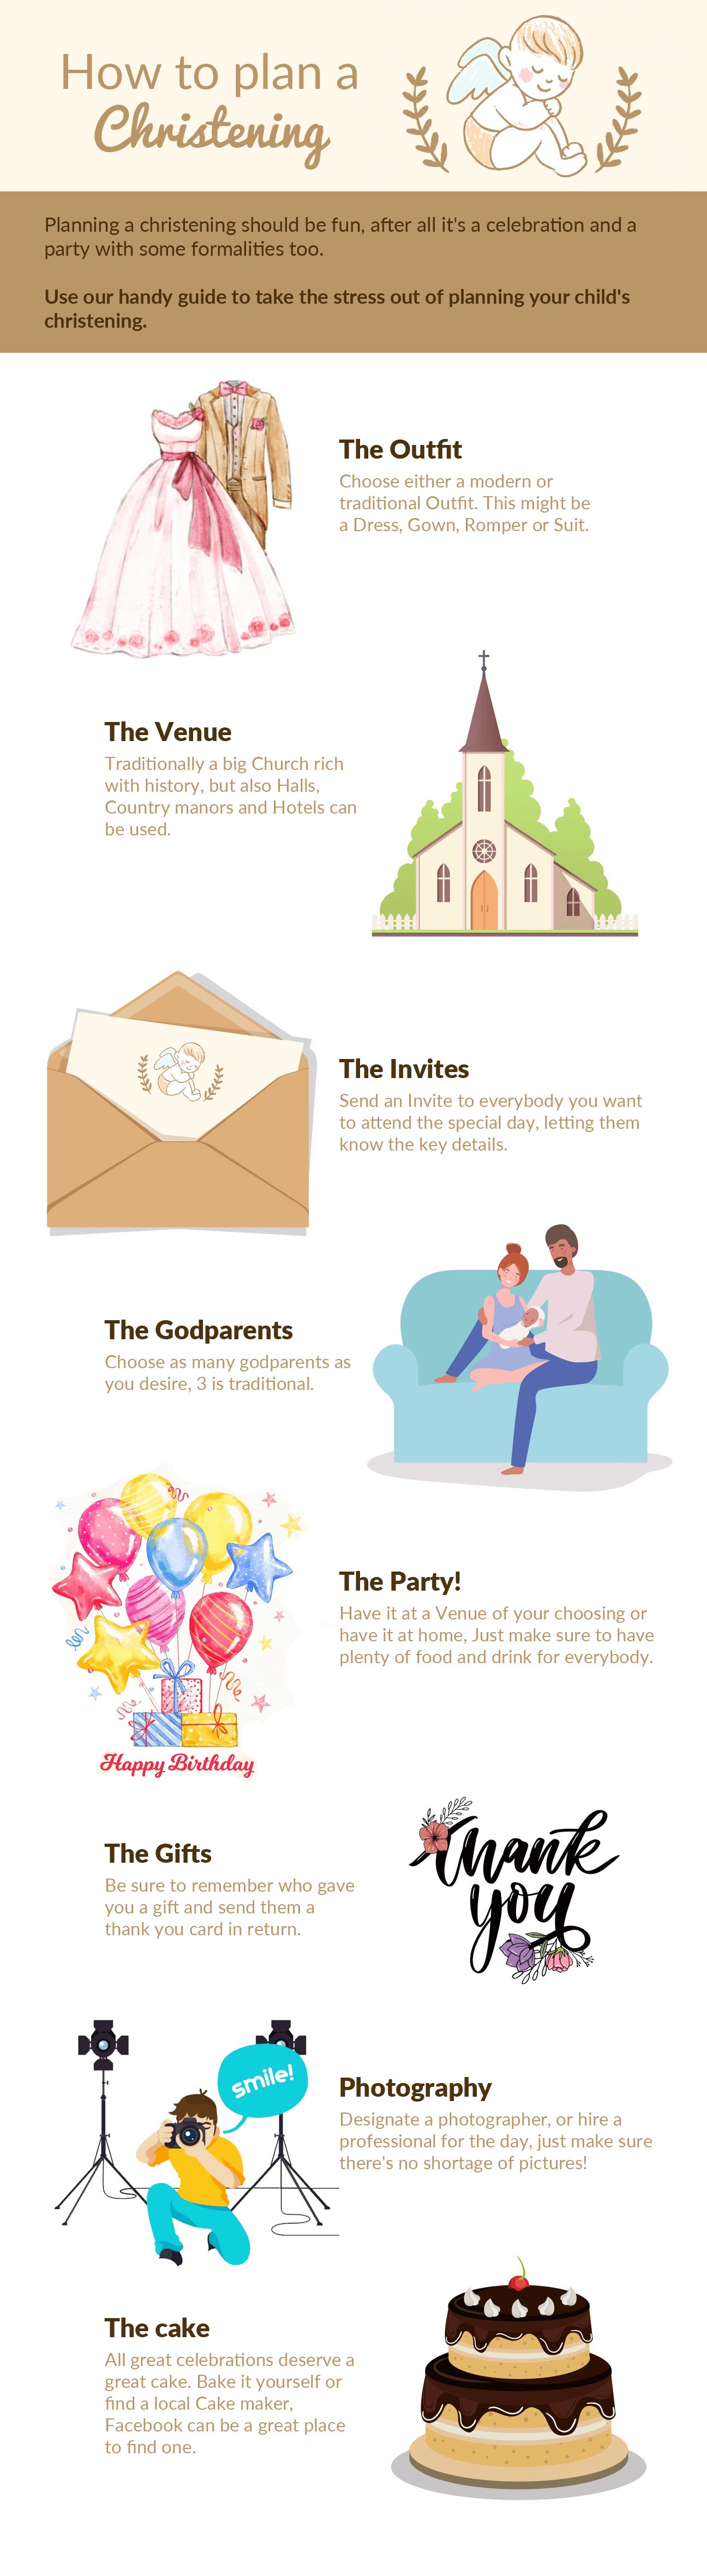 How to plan a christening infographic